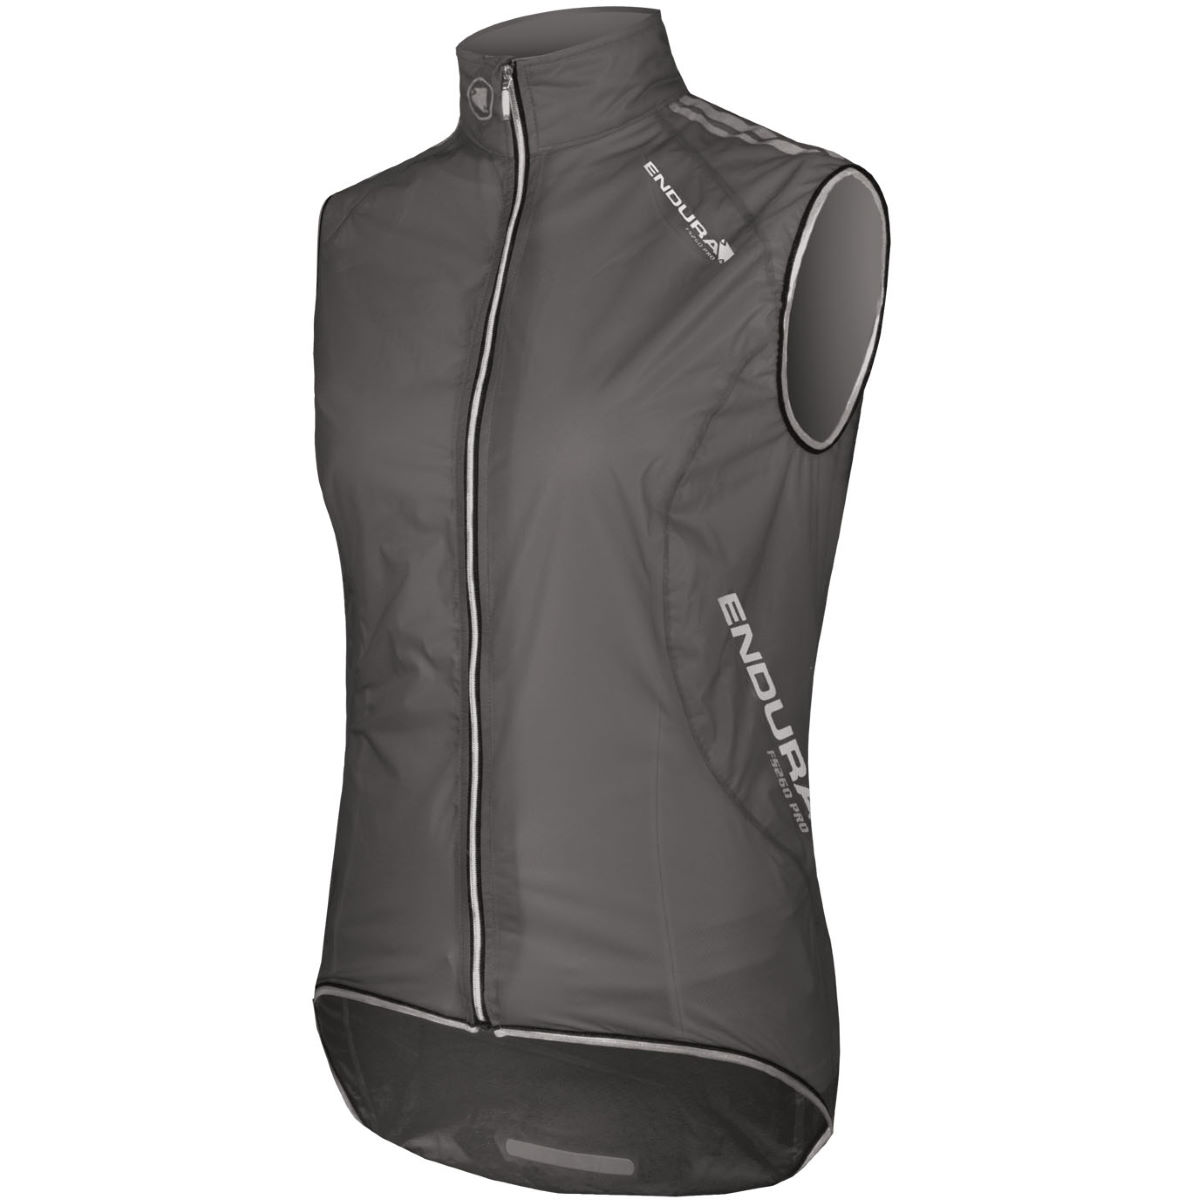 Endura  Women's FS260 Pro Adrenaline Gilet - Large Black